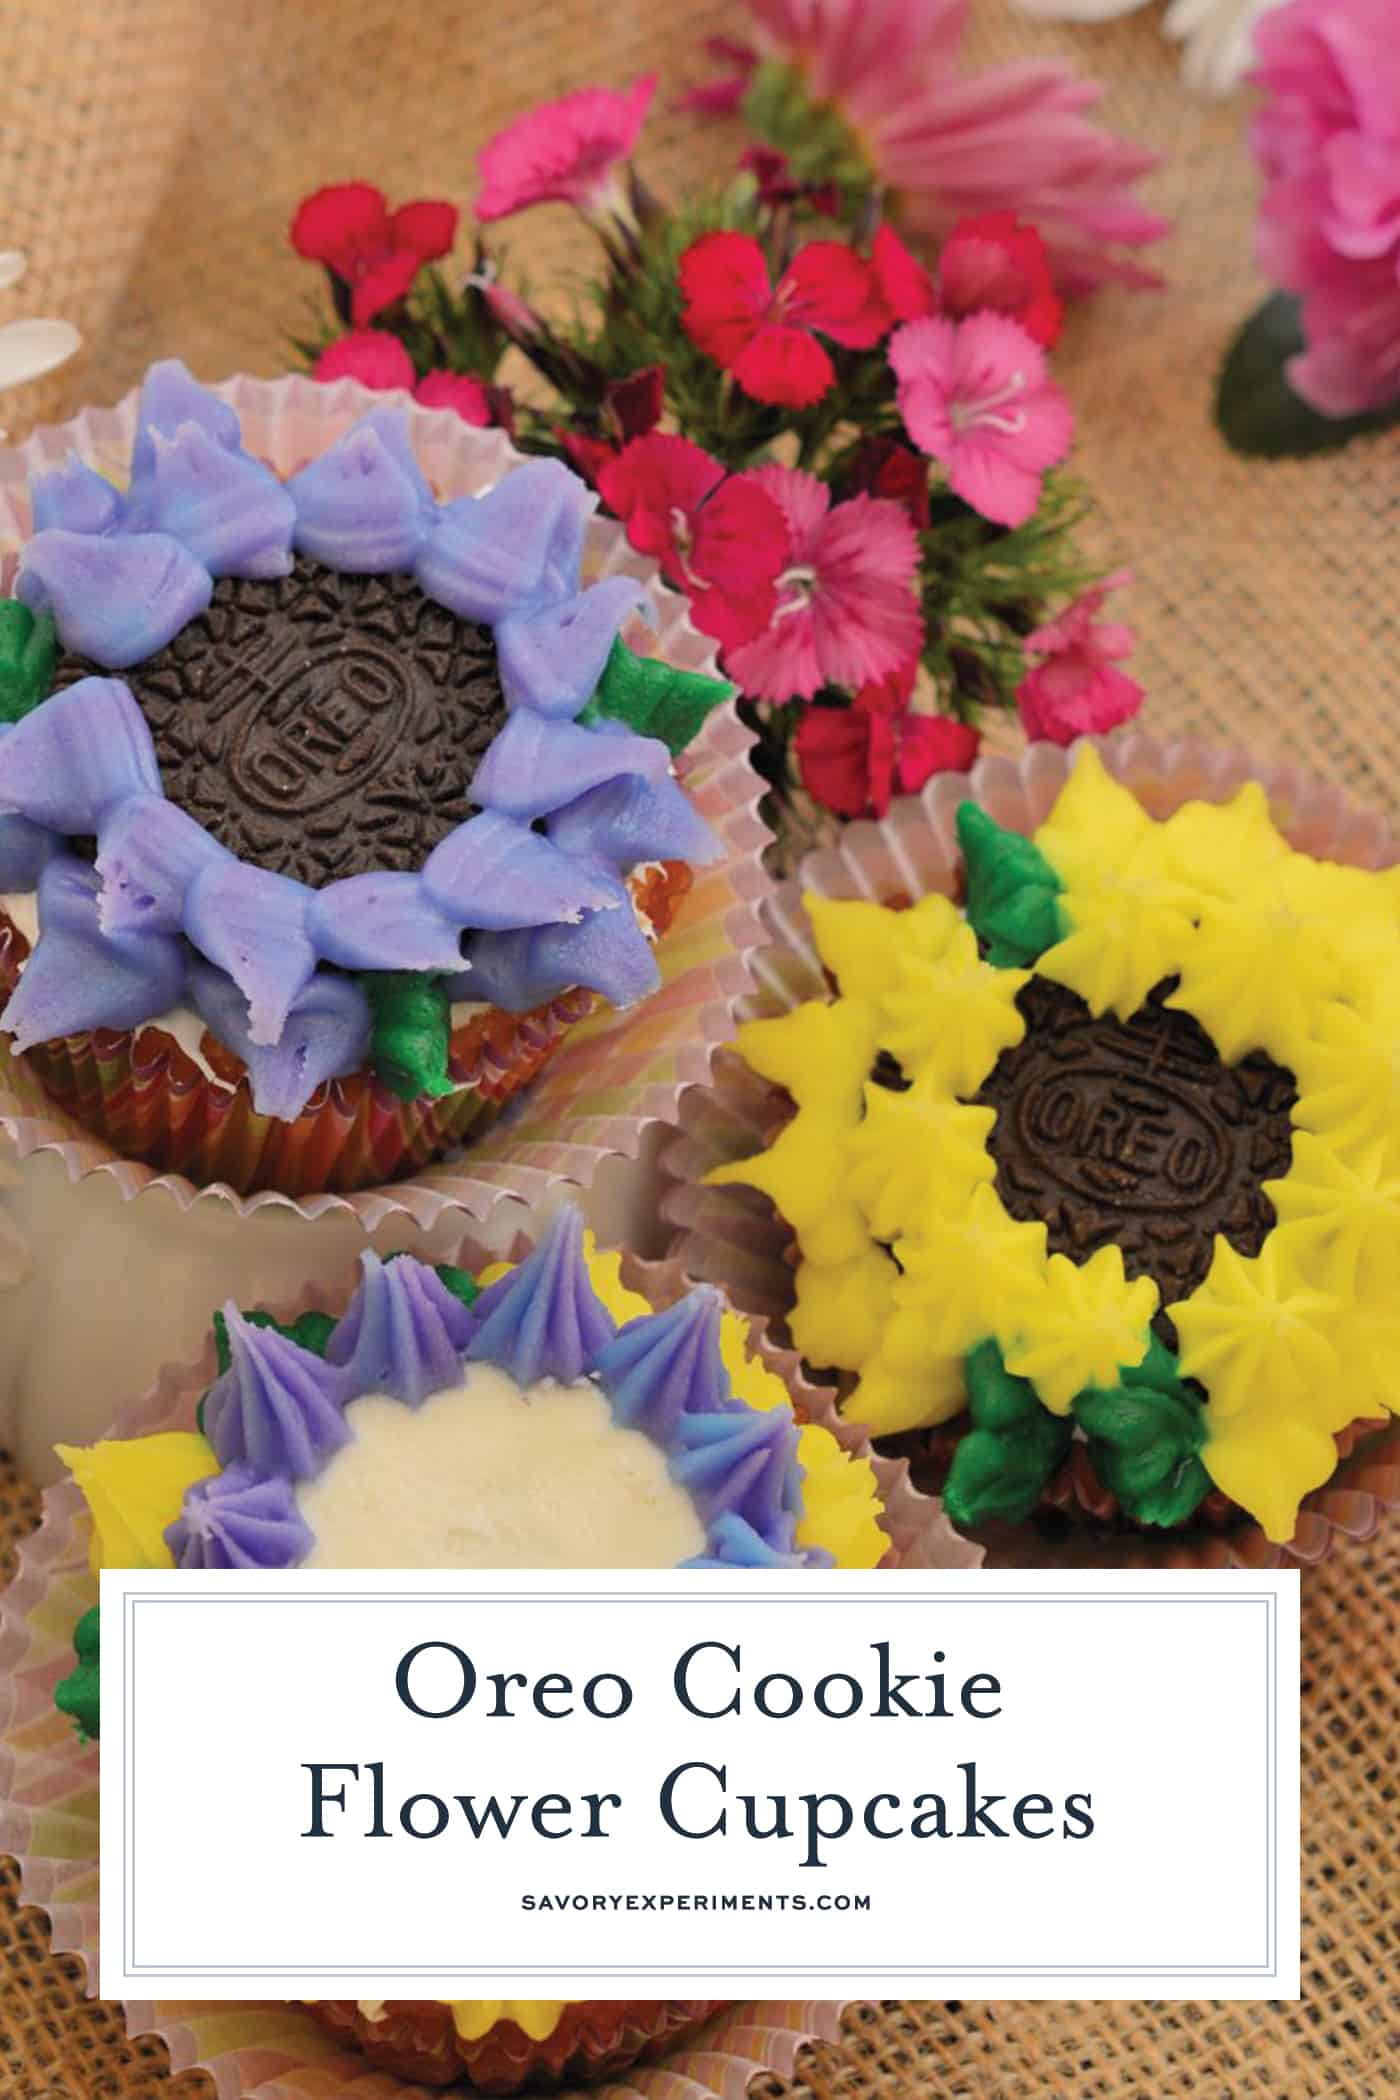 Oreo Cookie Flower Cupcakes are easy to decorate cupcakes perfect for spring or summer and totally kid friendly! #oreocookiecupcakes www.savoryexperiments.com